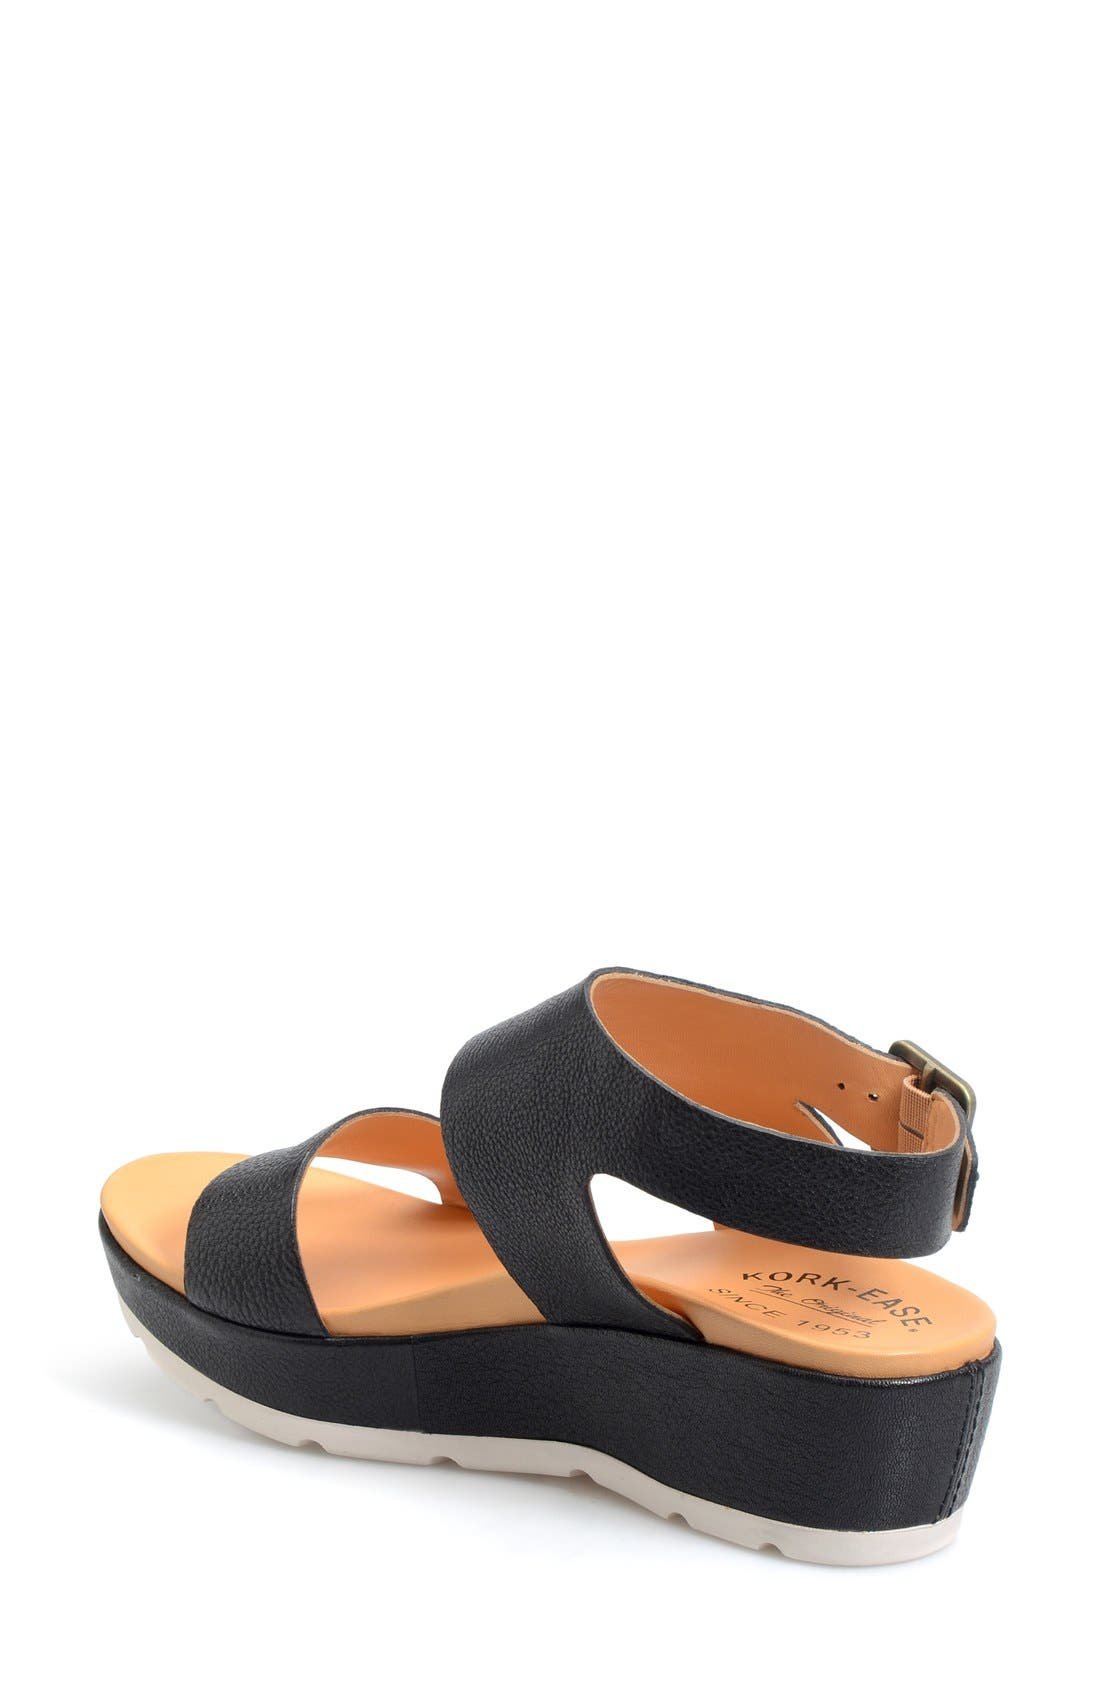 'Khloe' Platform Wedge Sandal,                             Alternate thumbnail 2, color,                             001